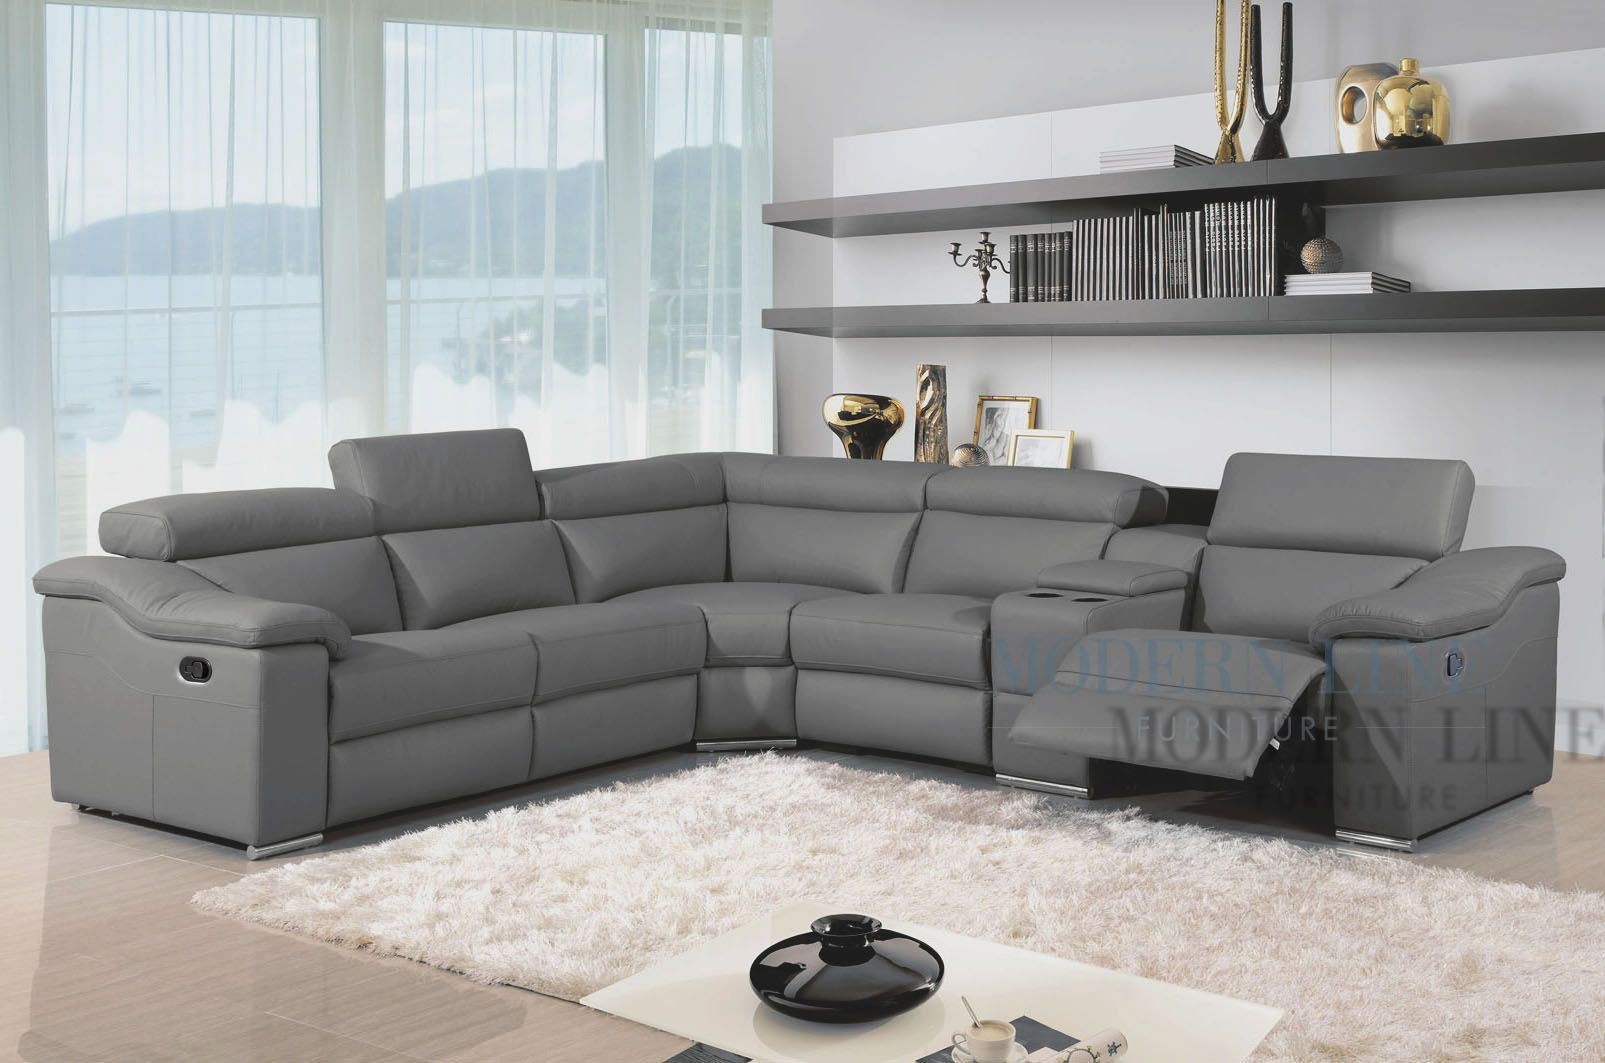 Sectional Sofas And Recliners Im Sofa King We Todd Did Jokes Like That Awesome Great Charcoal Grey 29 About Remodel Home Design Ideas With